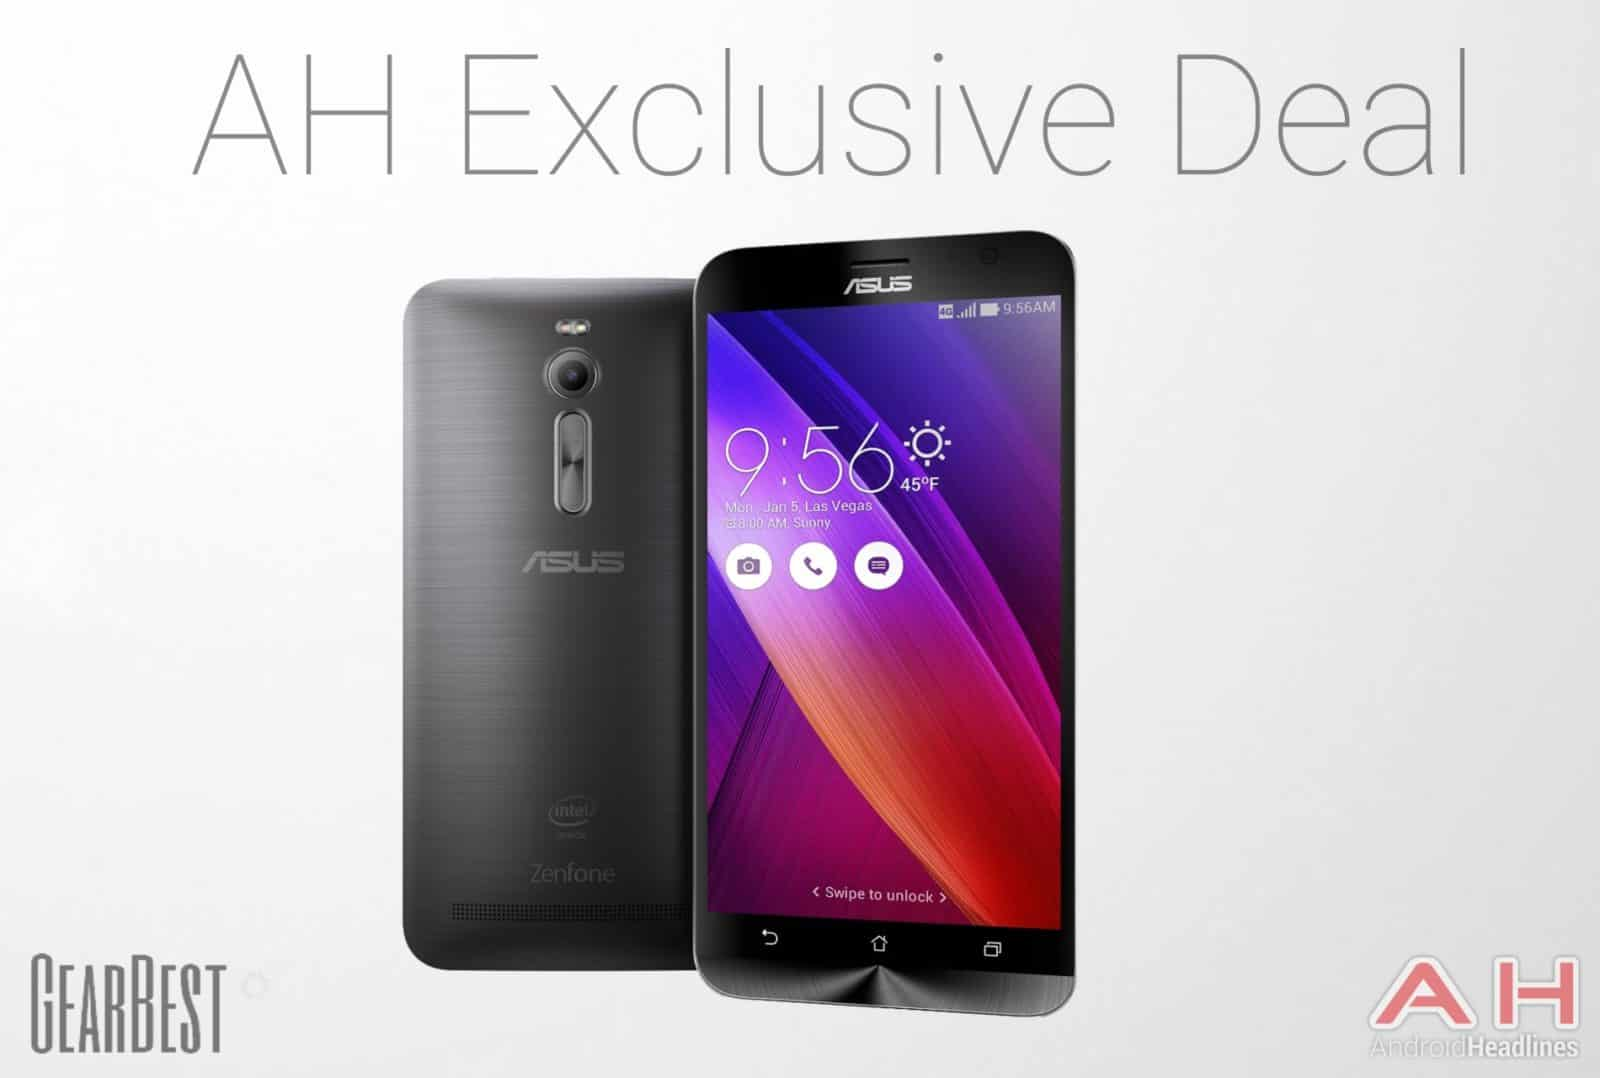 AH Exclusive Deal - Zenfone 2